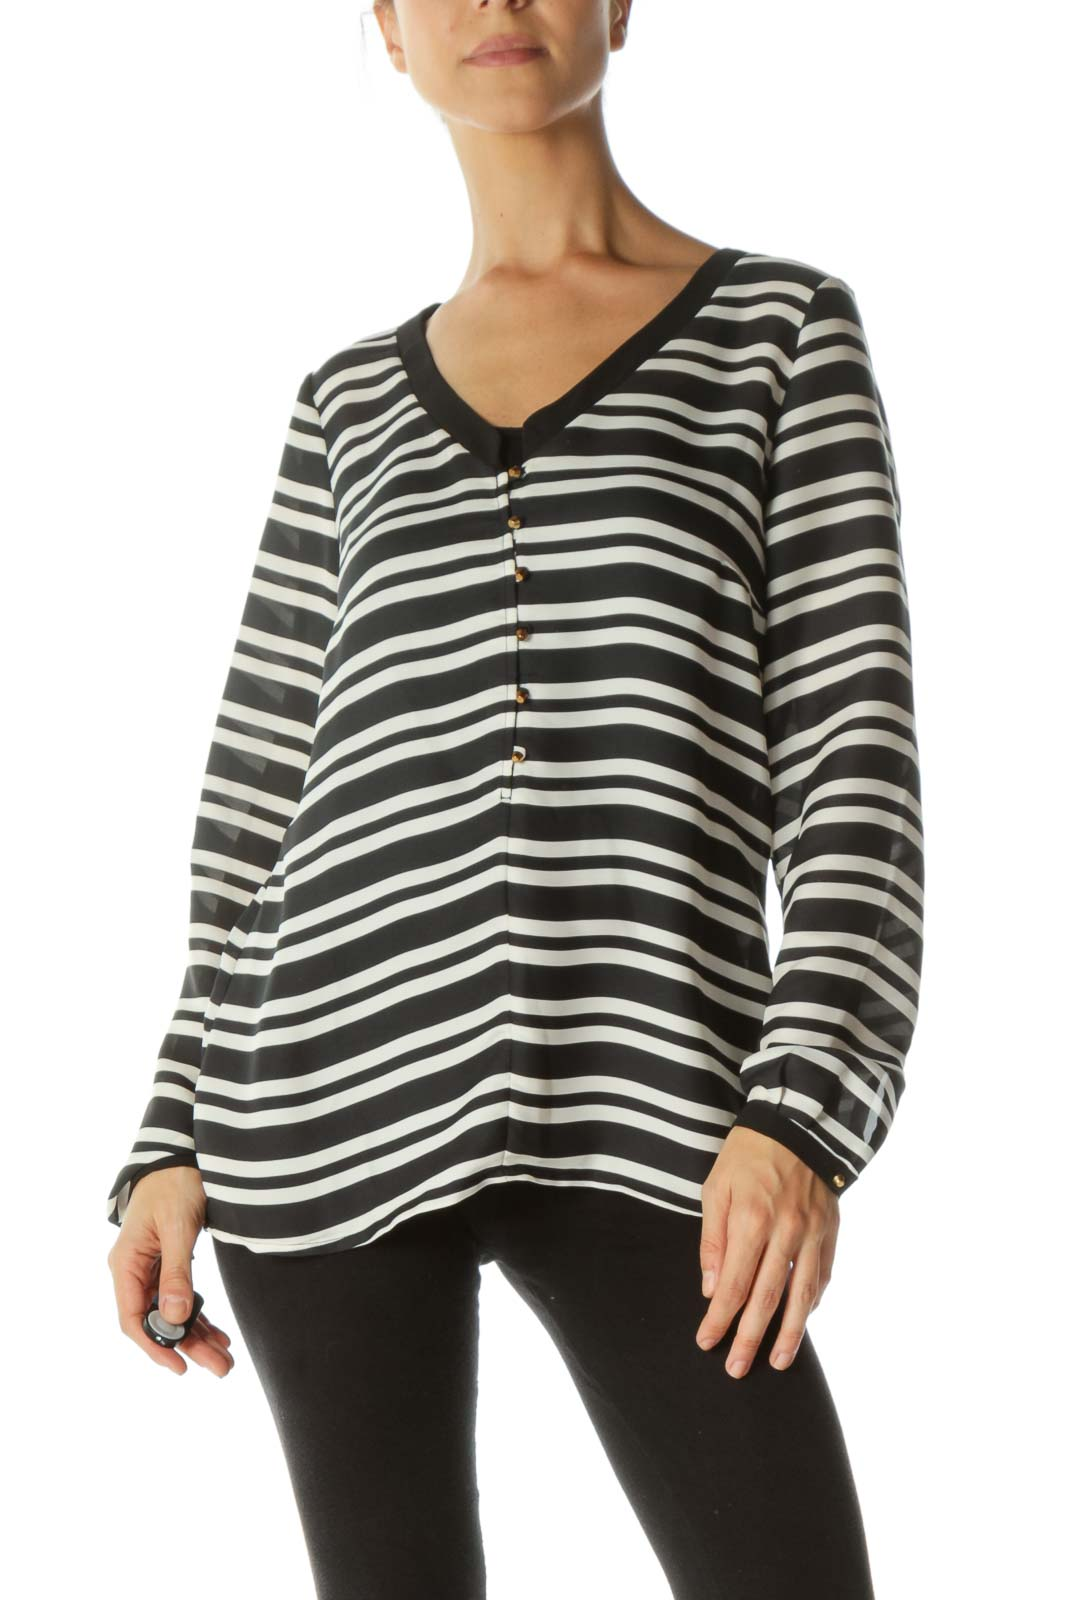 Black and White Striped Long Sleeve Blouse